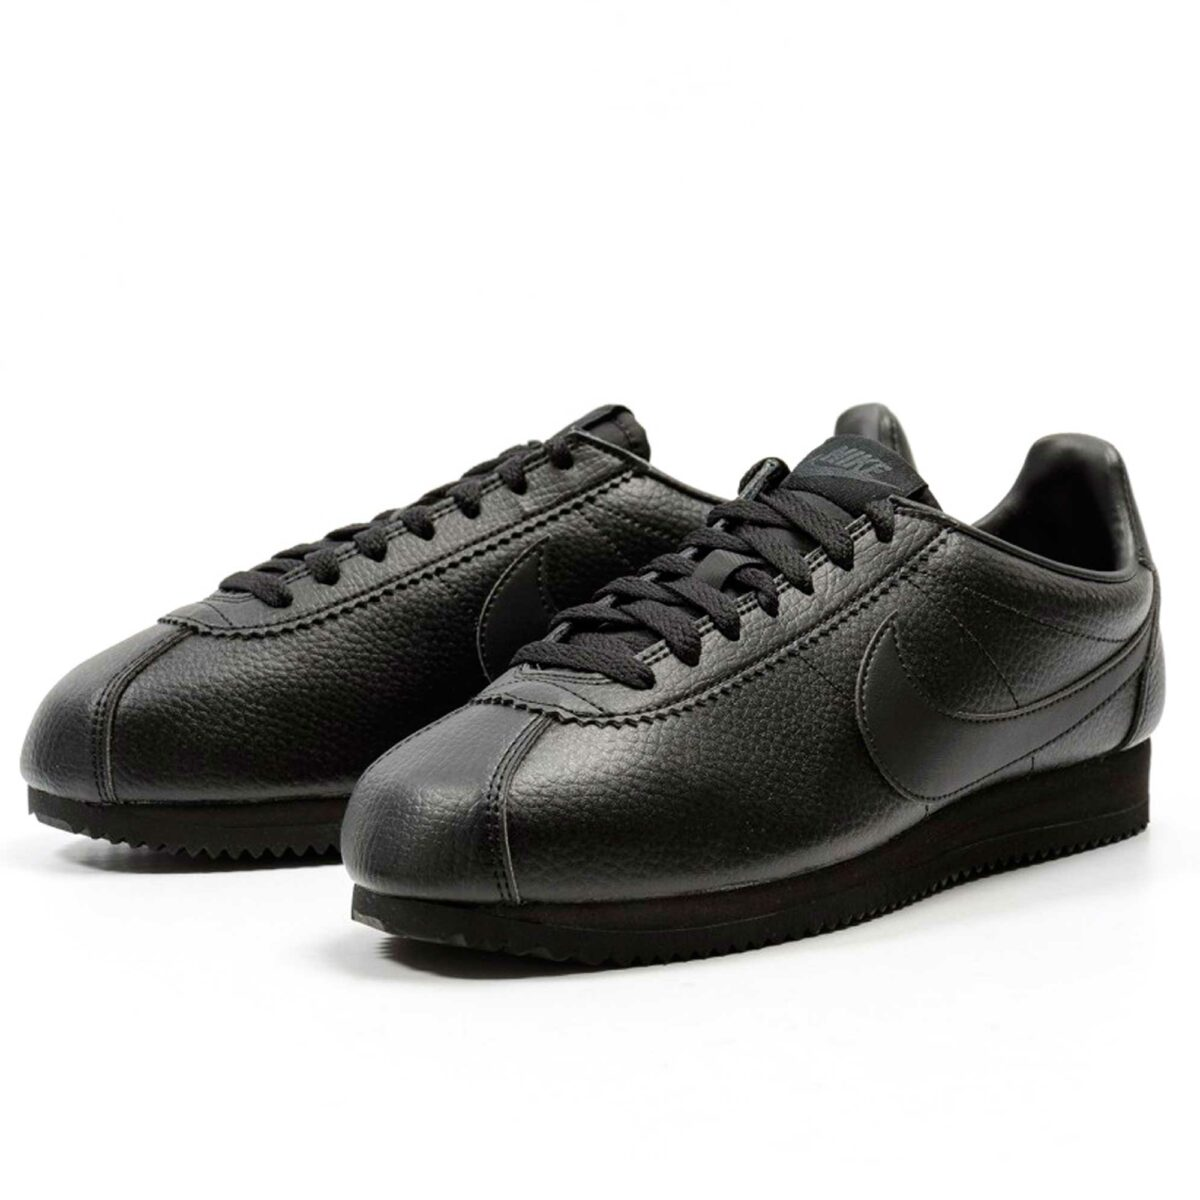 nike cortez leather all black 749571_002 купить